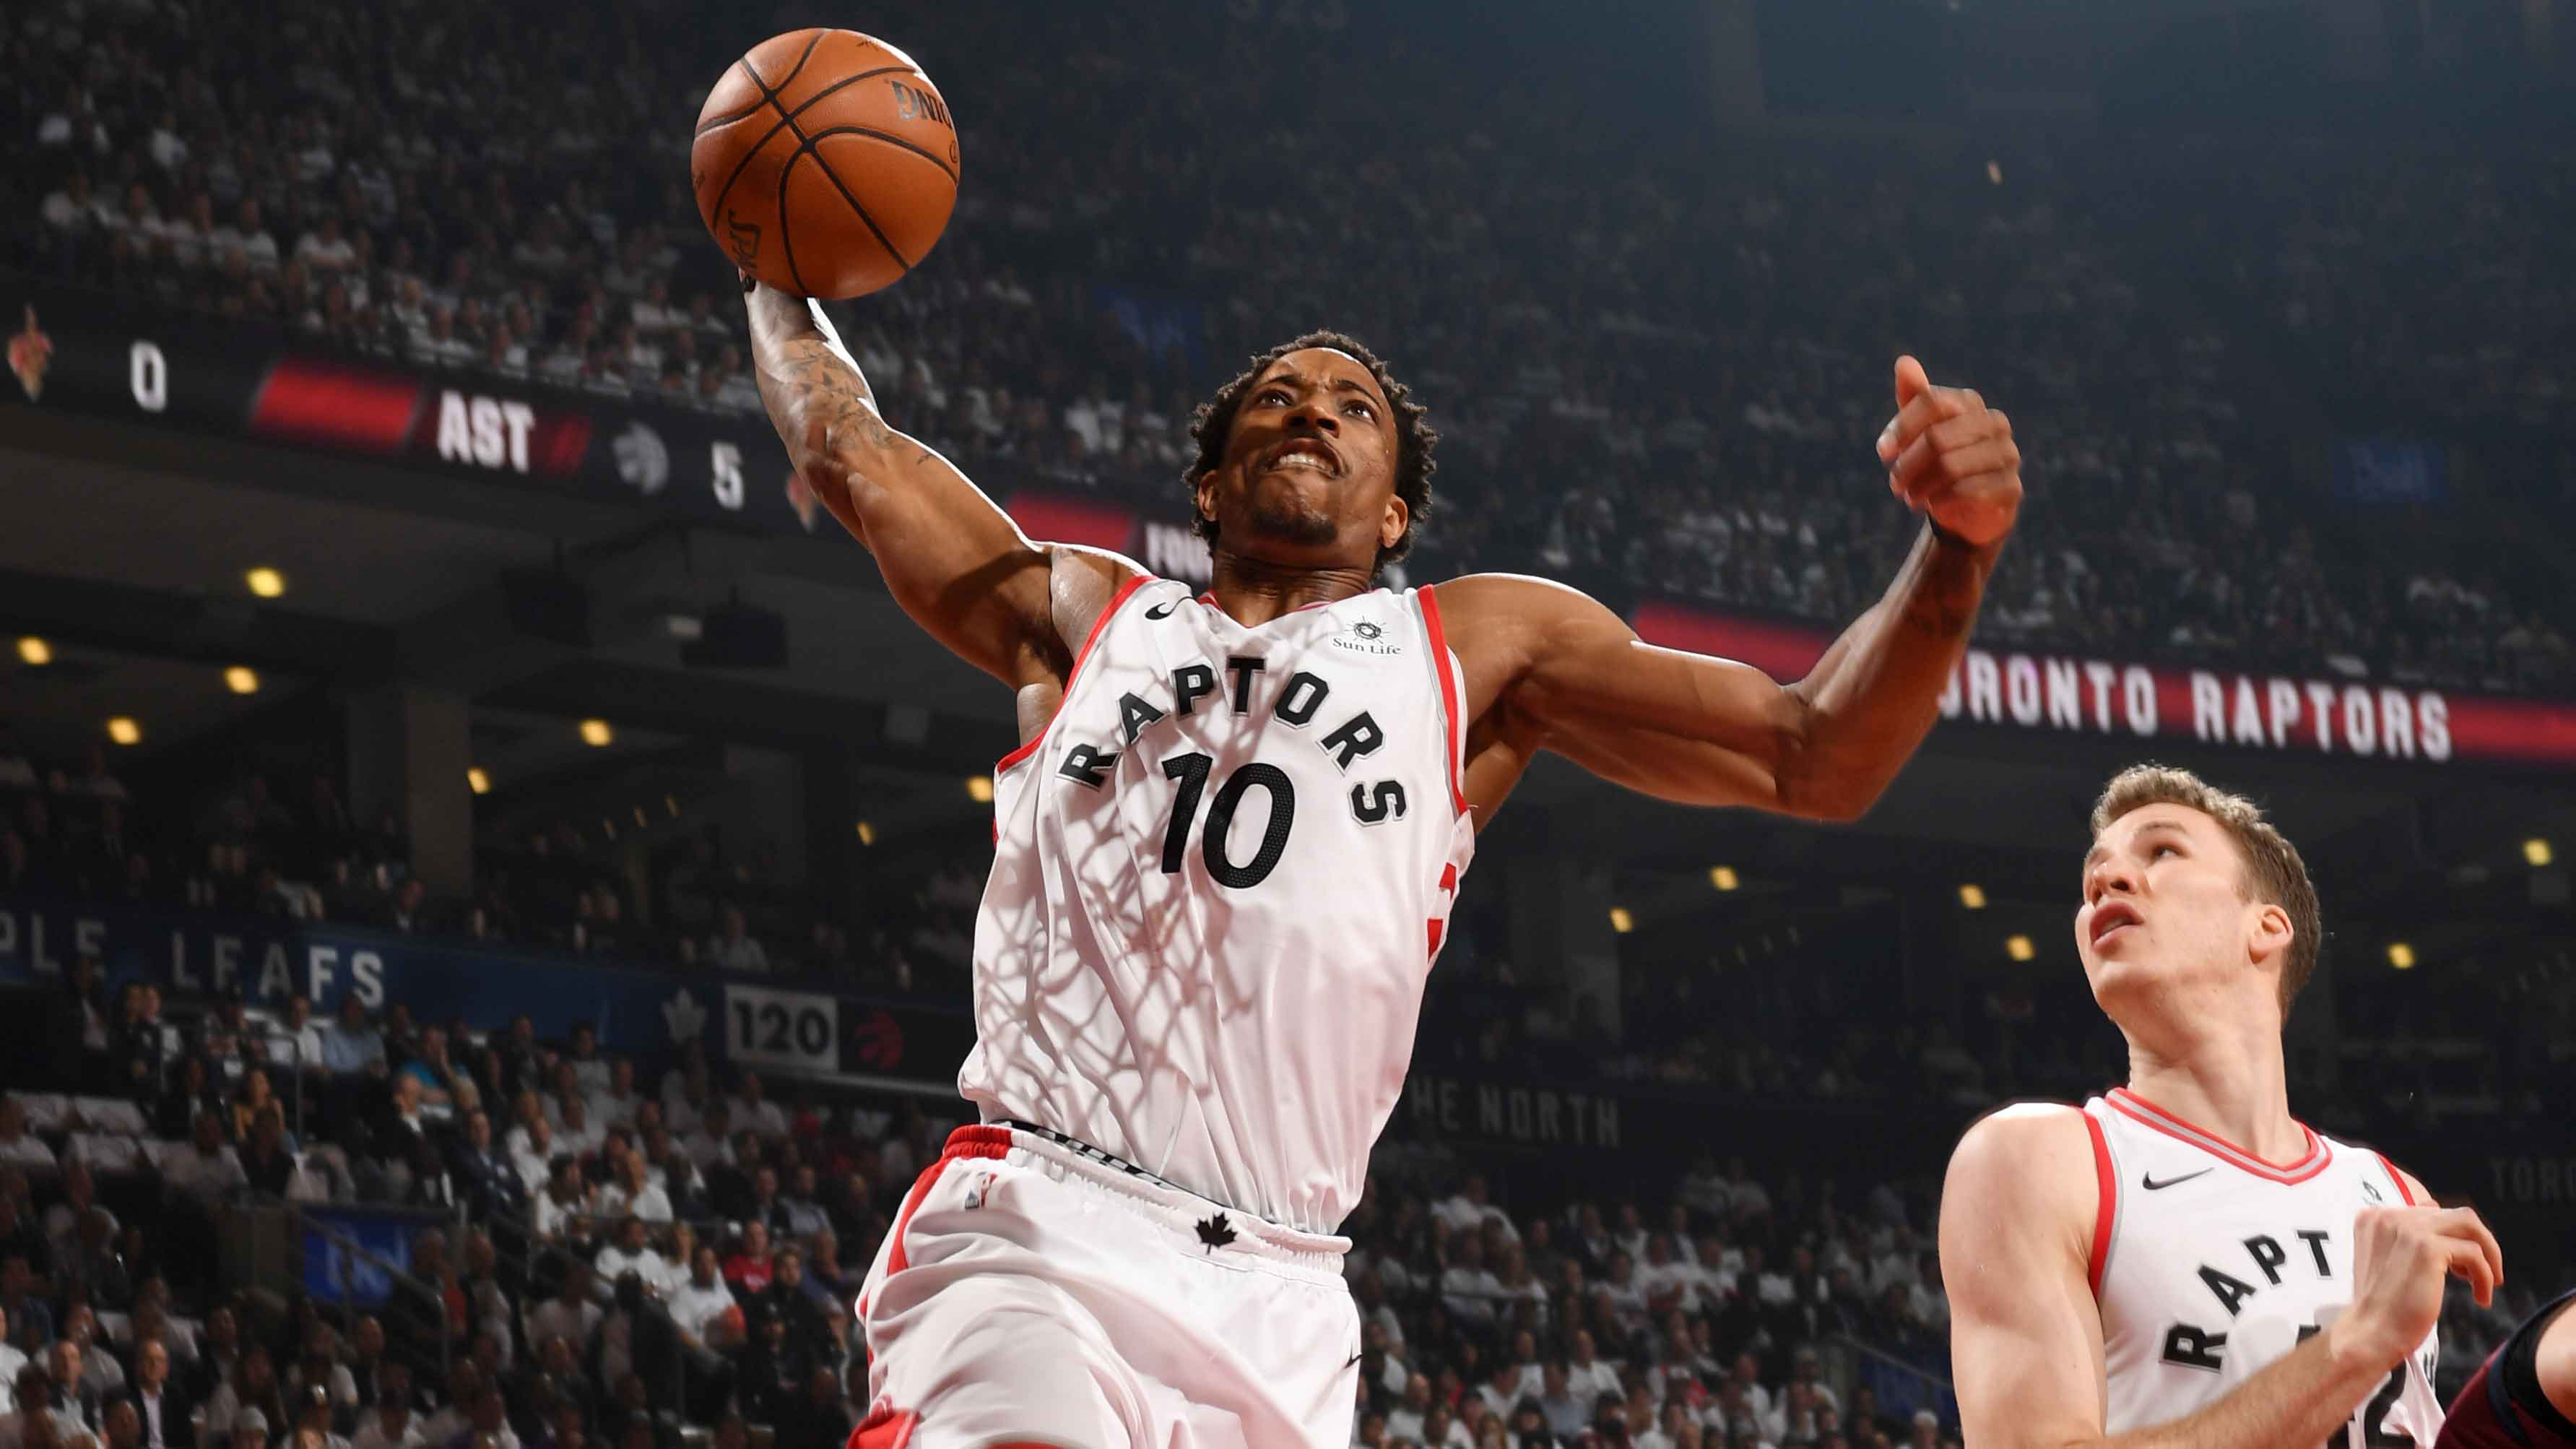 San Antonio Spurs trade Kawhi Leonard to Toronto Raptors for DeMar DeRozan a2a1d5890